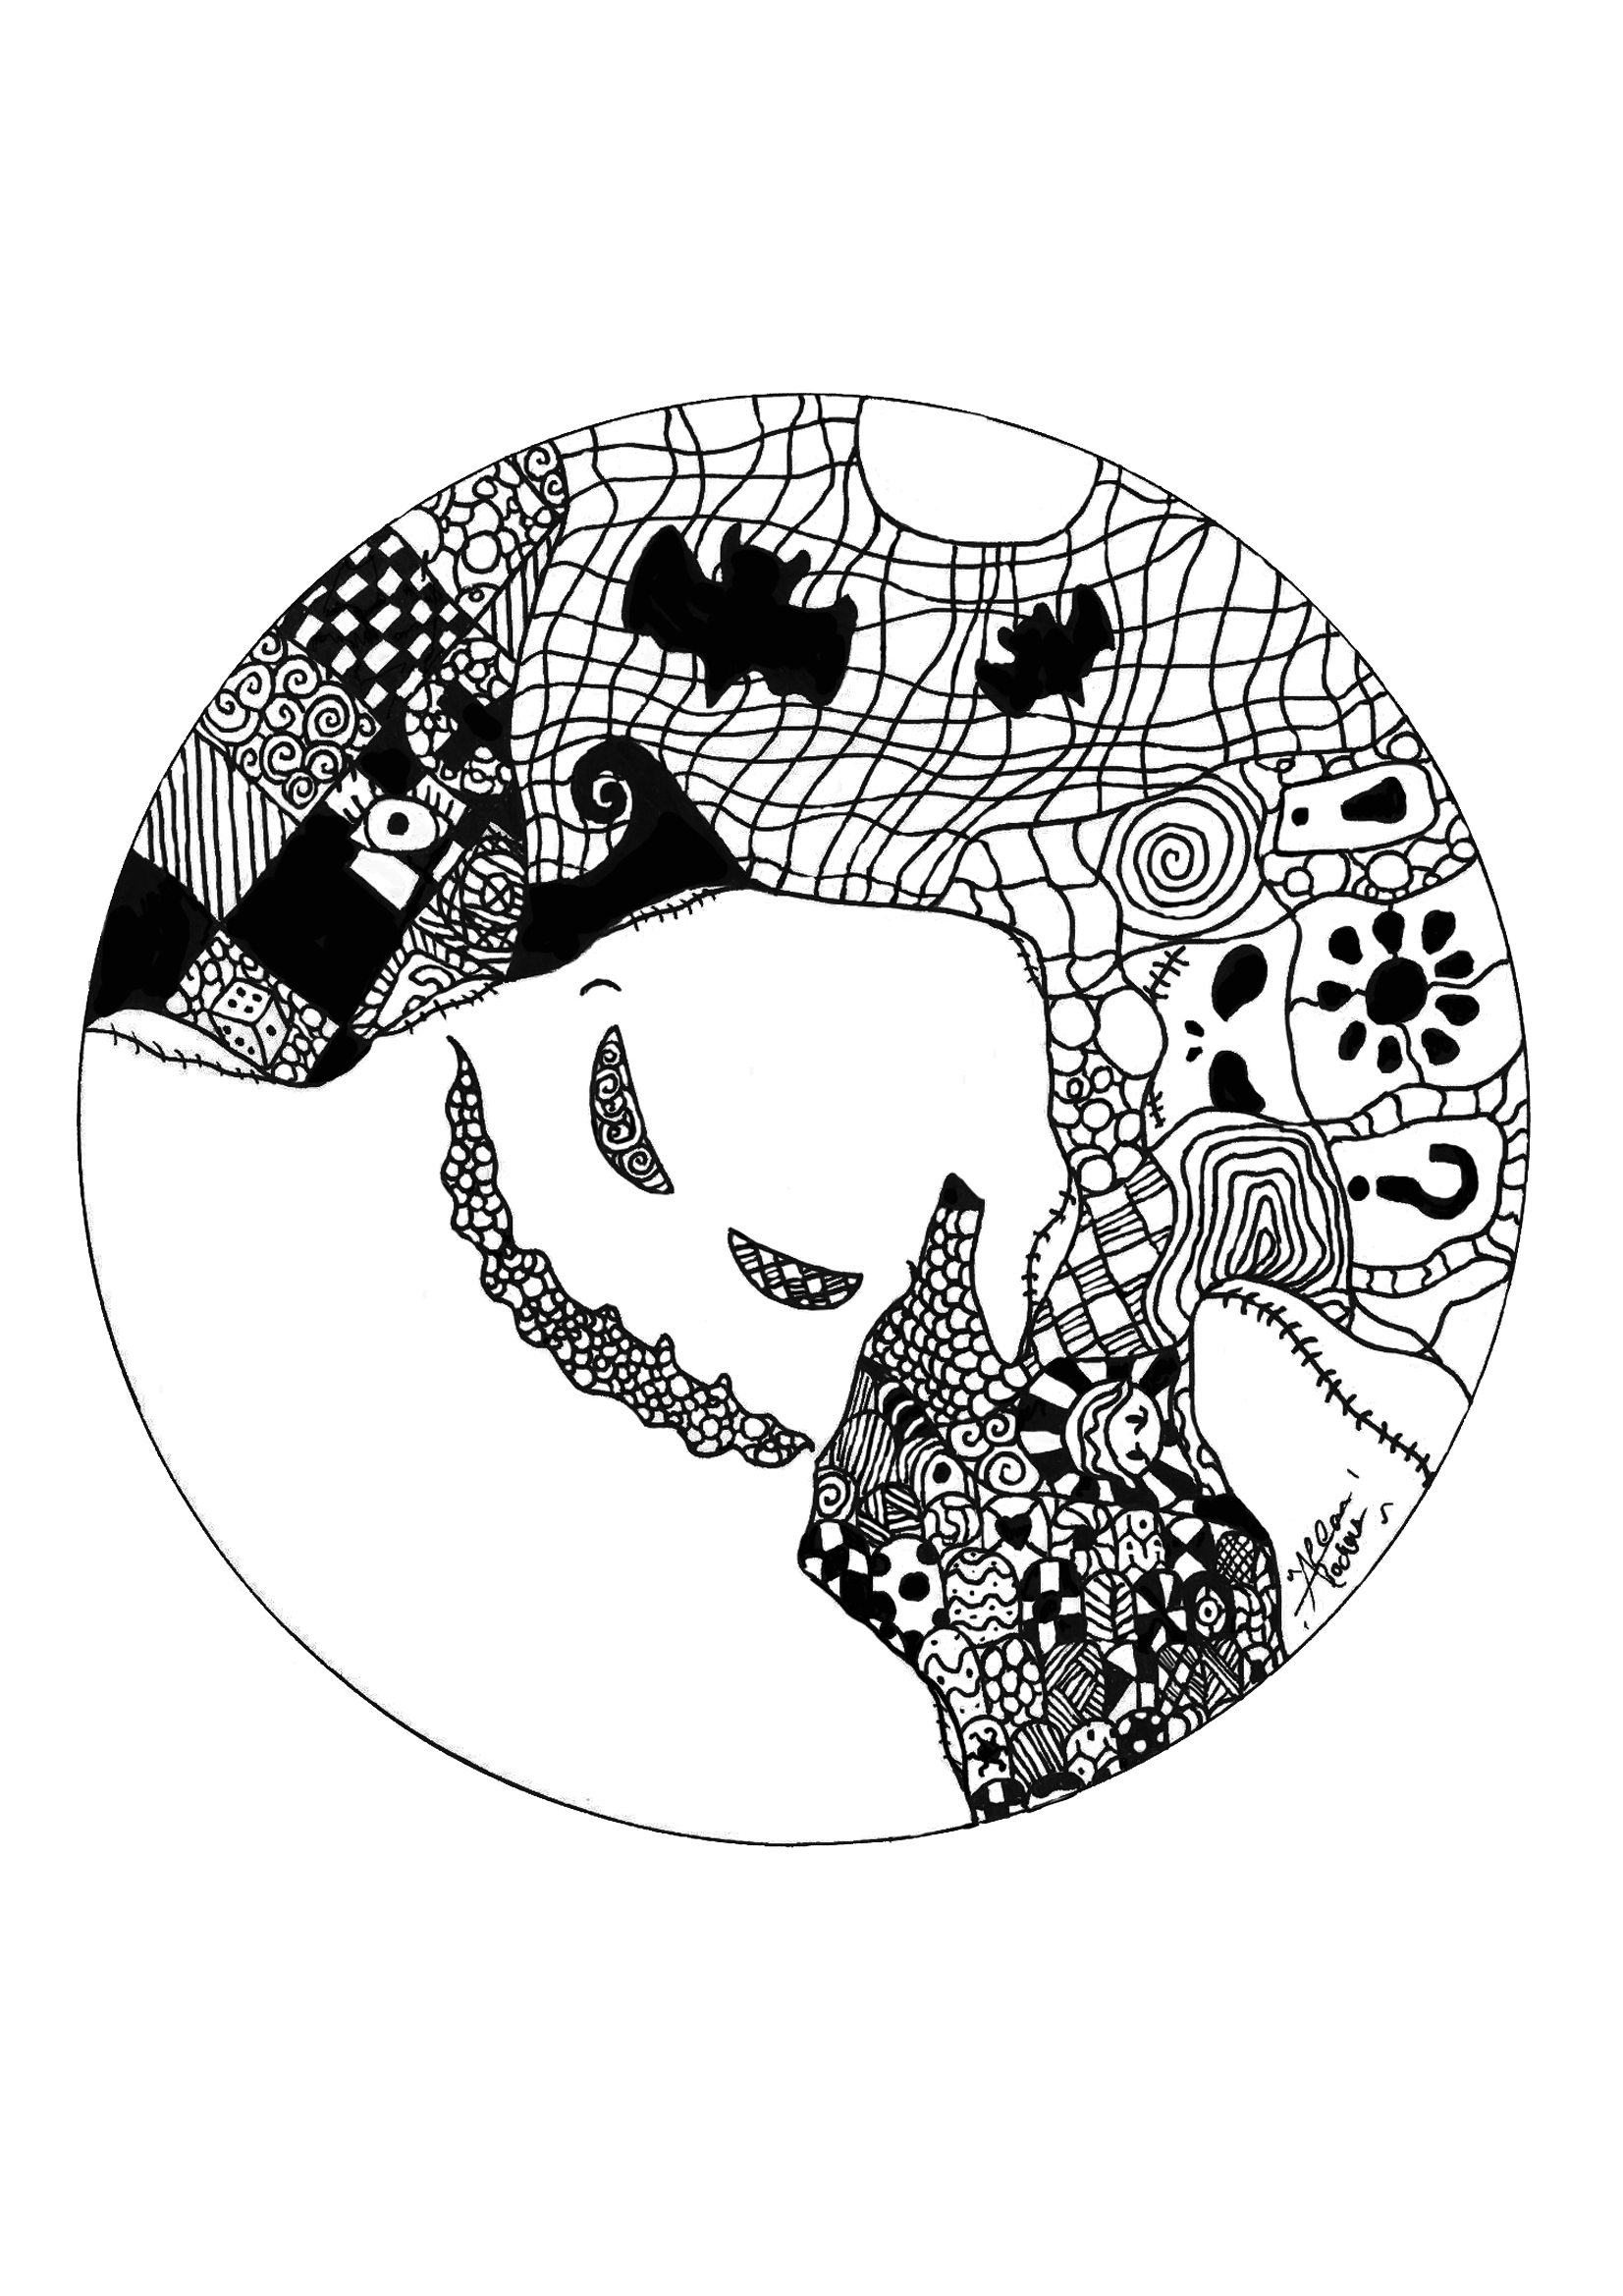 This Mandala on the Halloween theme is dreadful